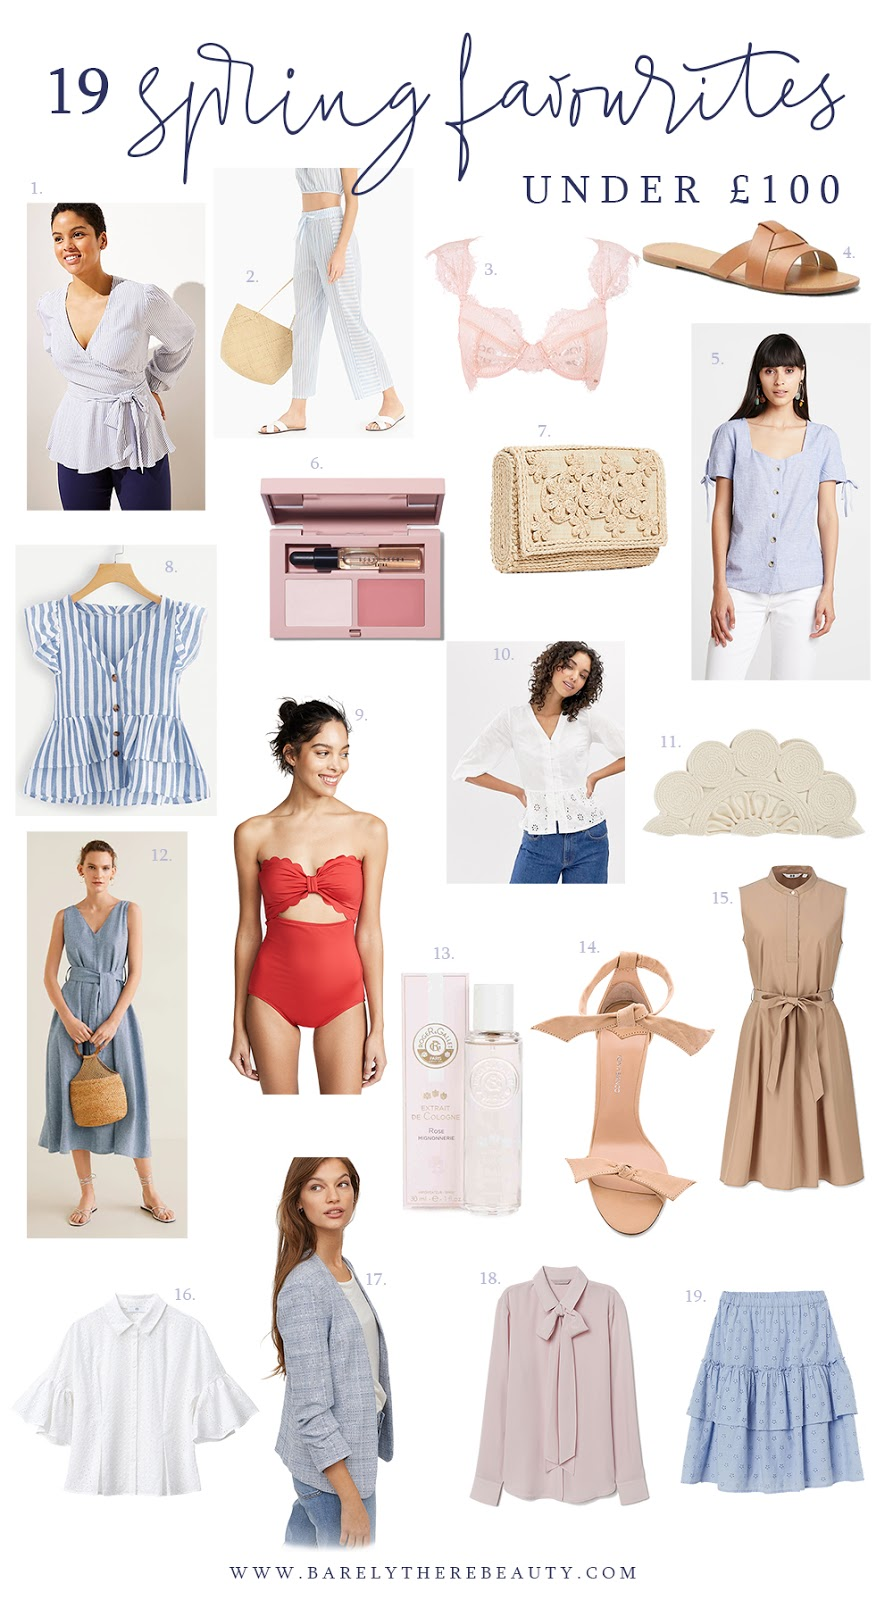 classic-style-spring-finds-under-£100-Barely-There-Beauty-blog